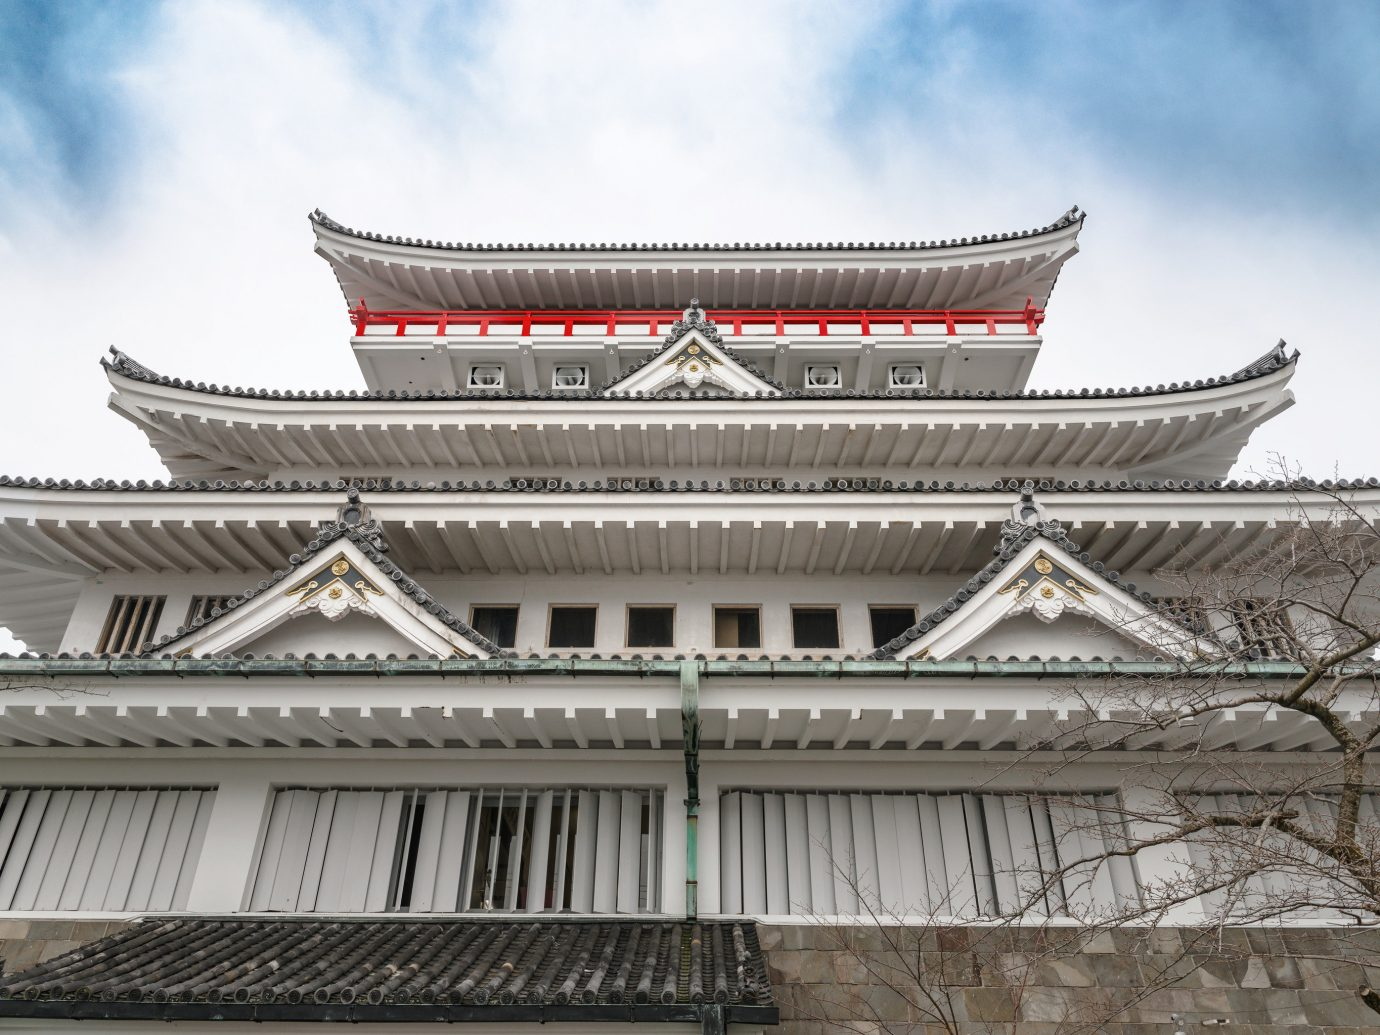 Day Trips sky outdoor chinese architecture building landmark place of worship structure Architecture japanese architecture historic site facade roof palace temple lamasery